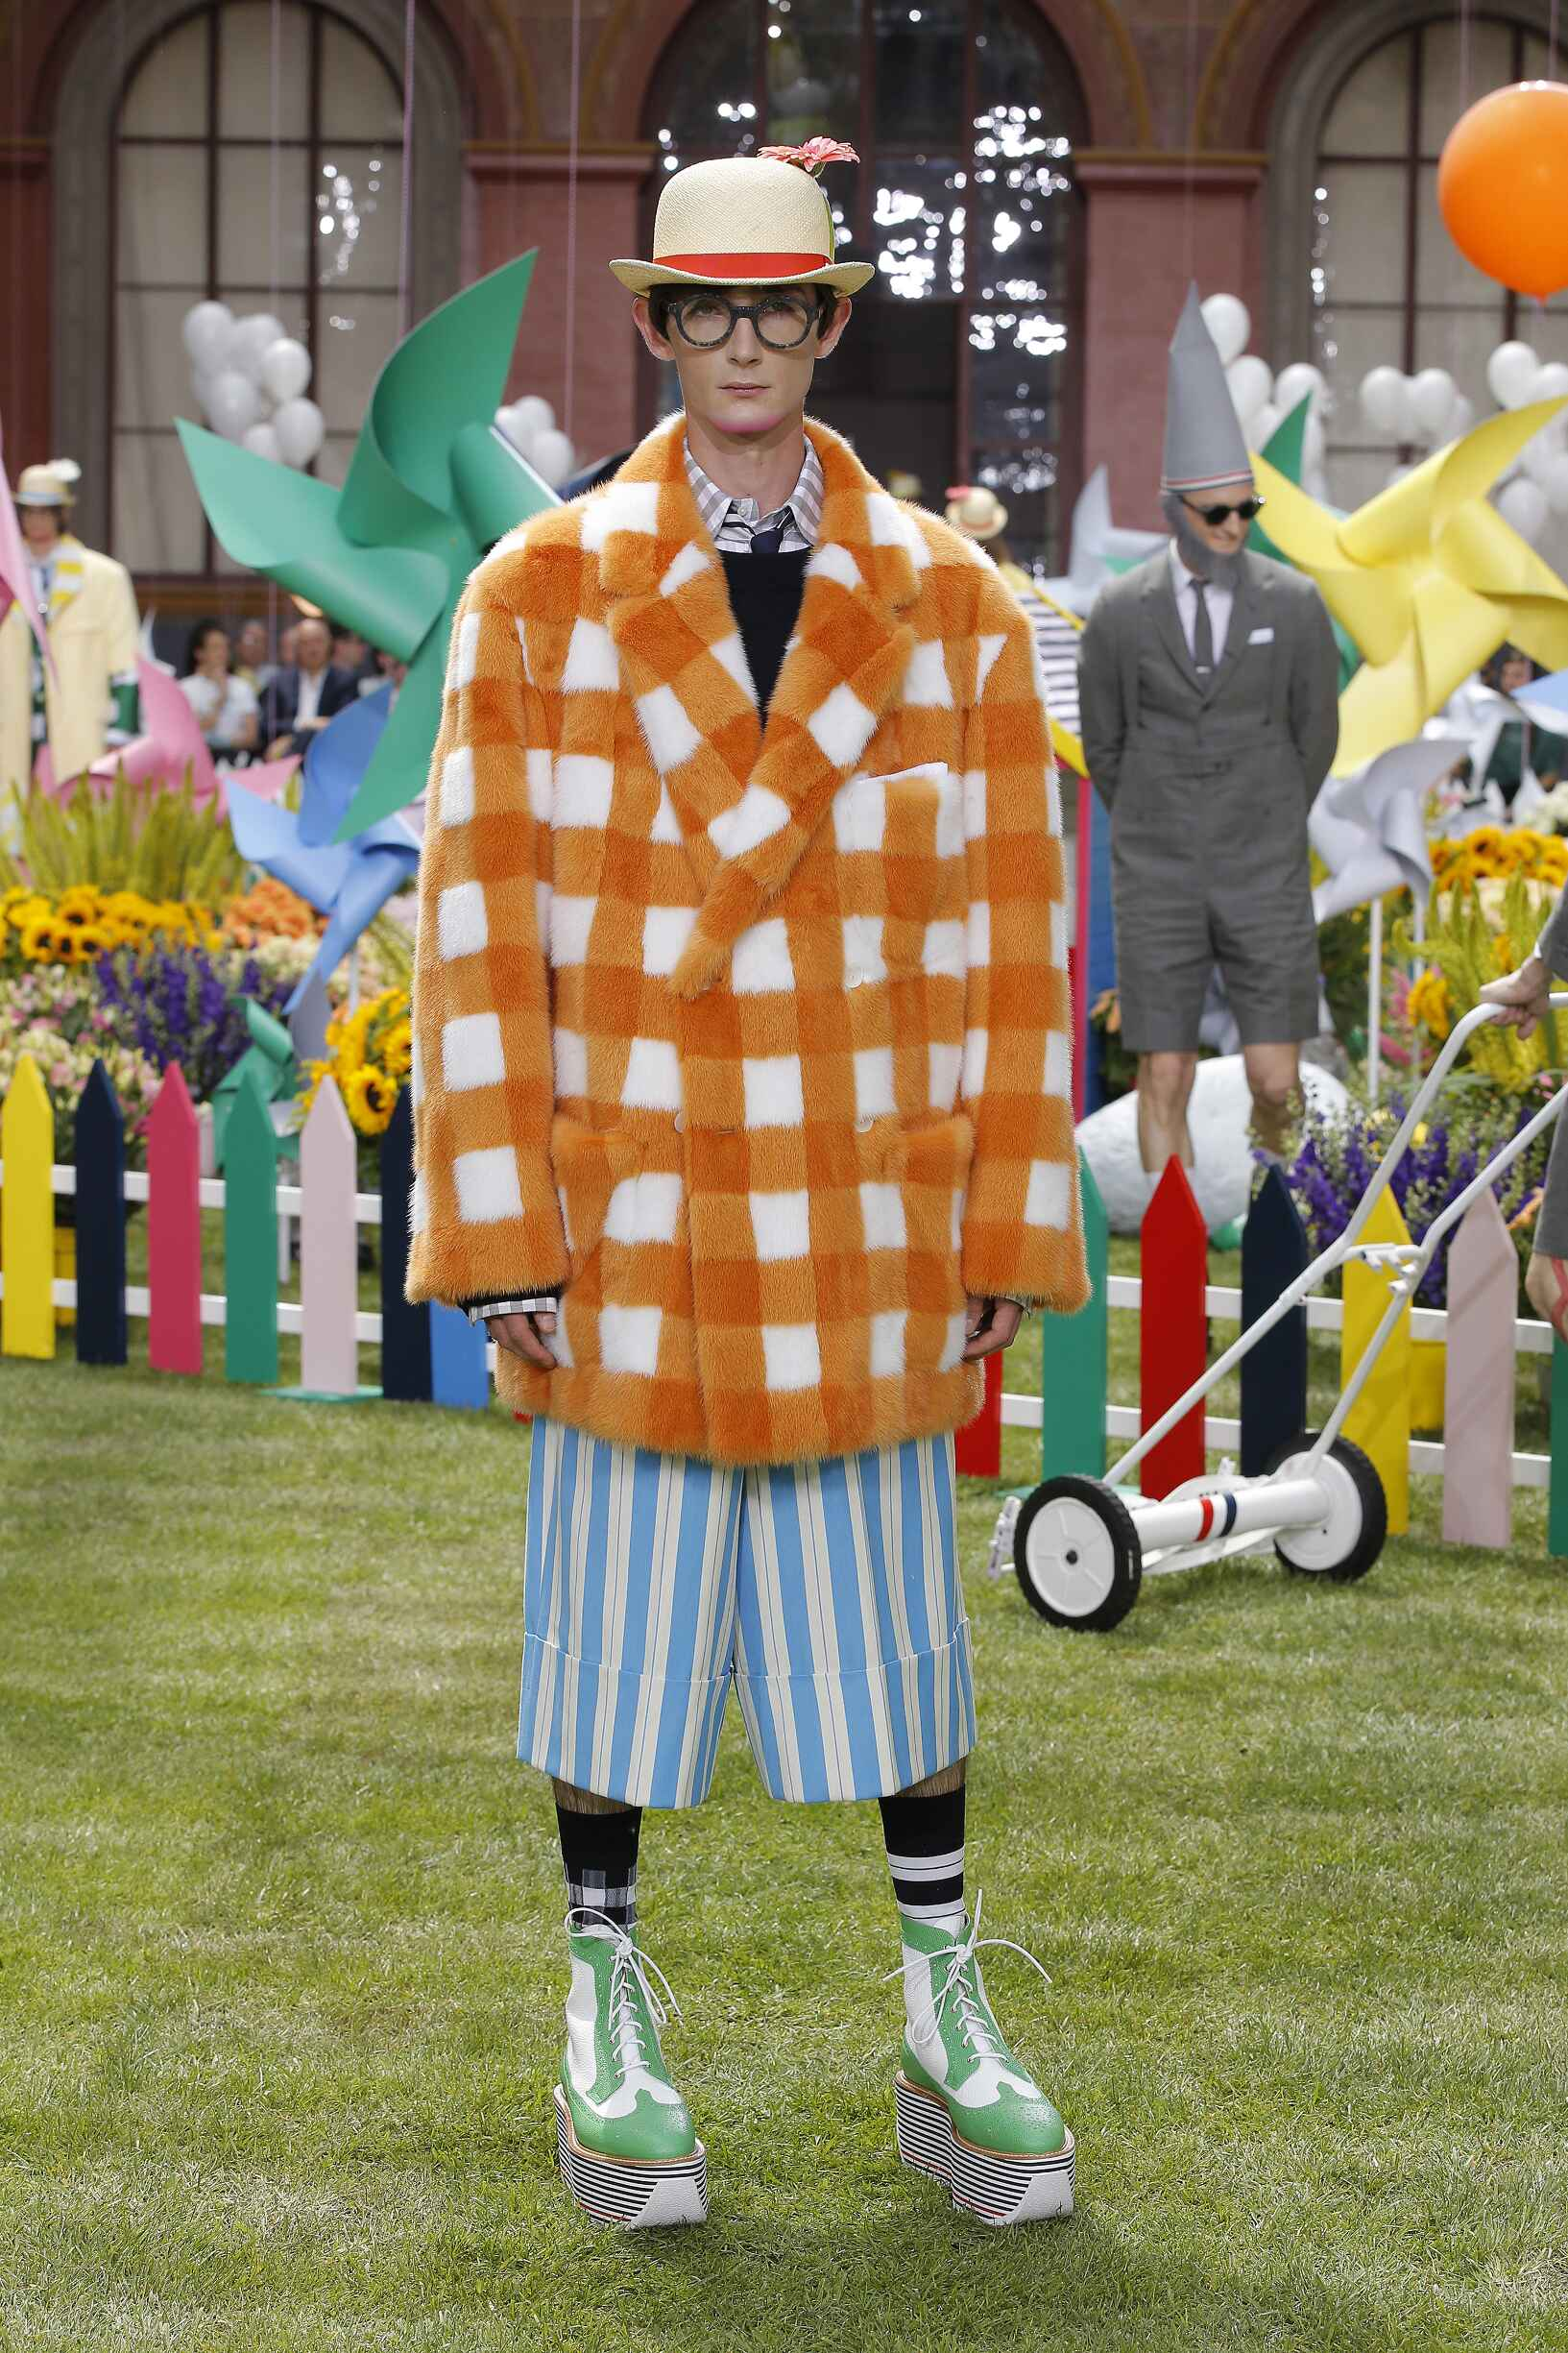 Thom Browne Spring Summer 2019 Mens Collection Paris Fashion Week